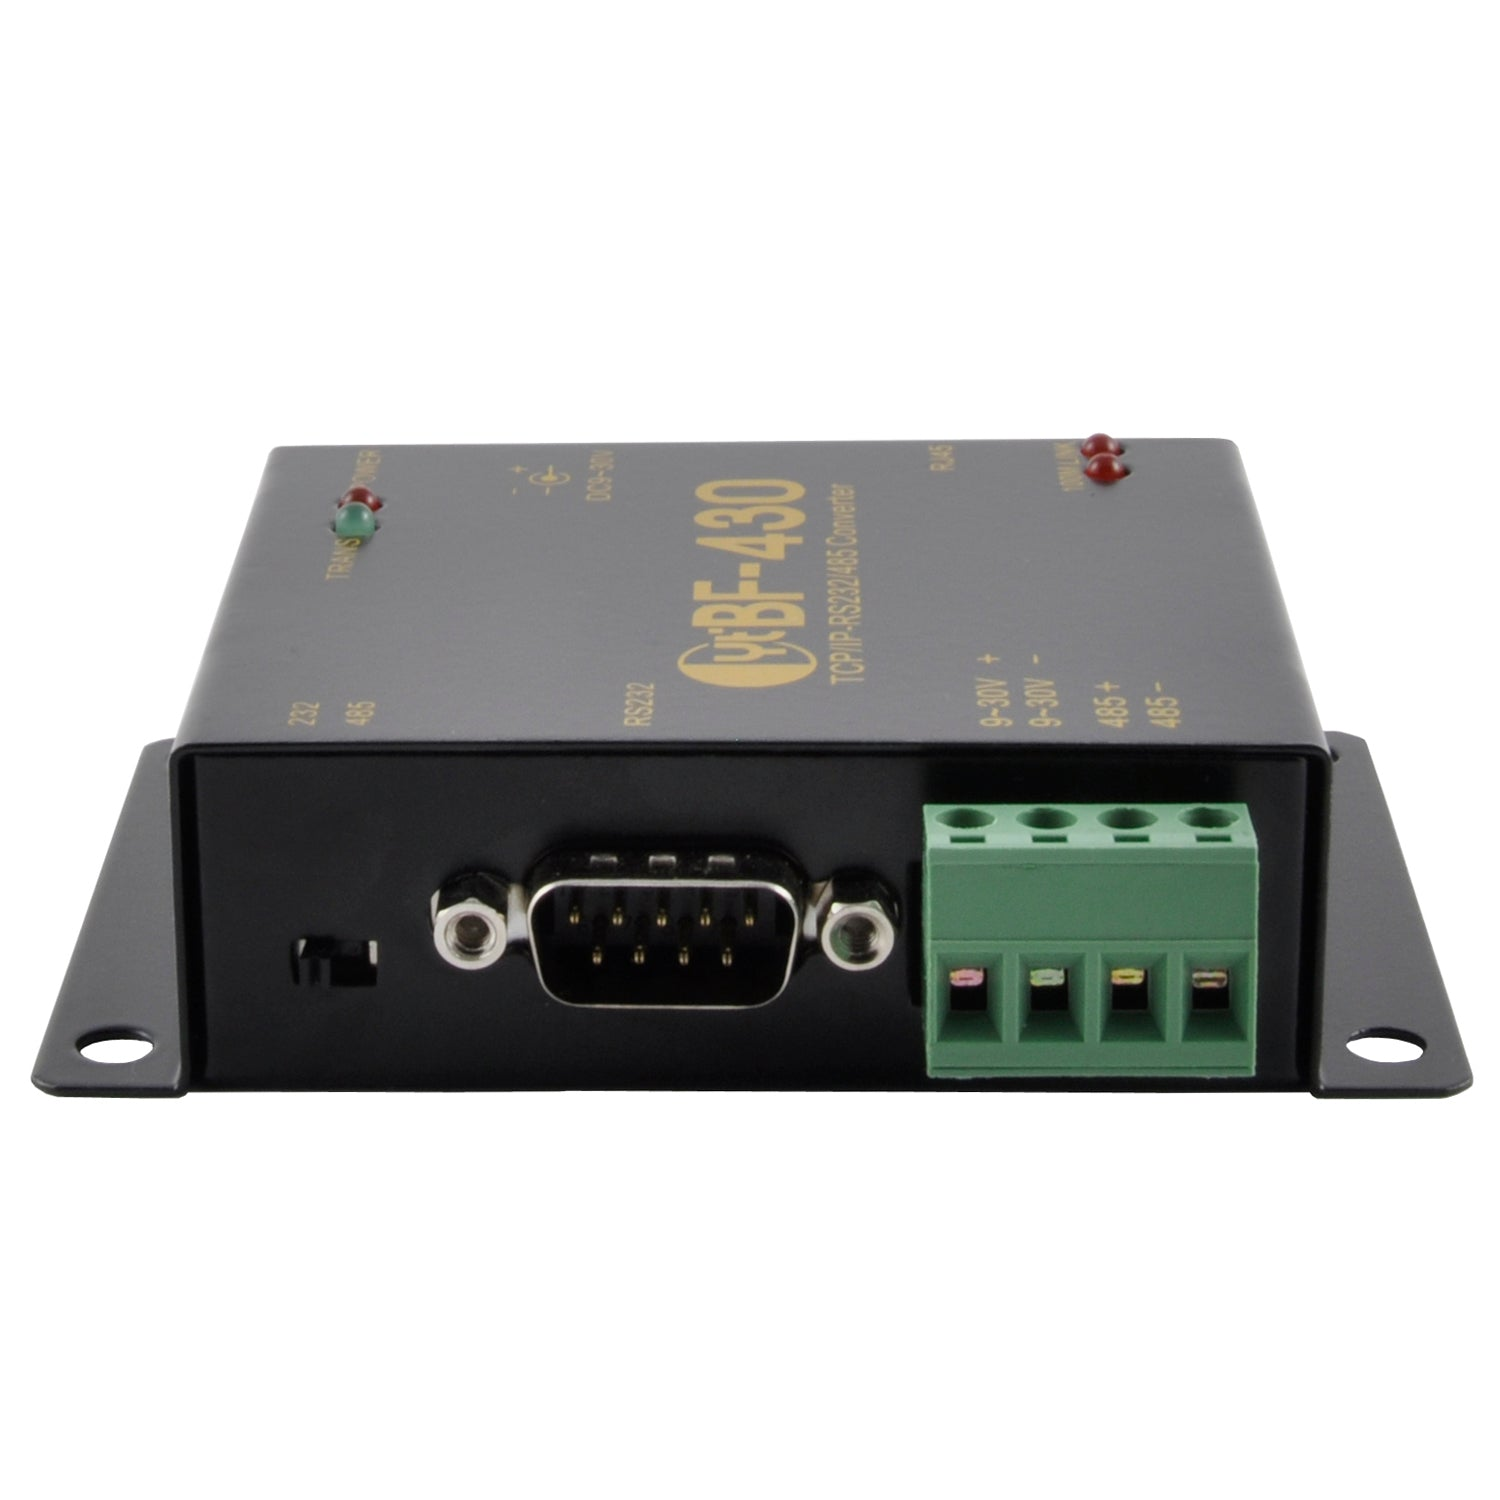 Rs232 Ethernet Converter Bf 430 Grid Connect Wire To Rs485 Schematic 6900